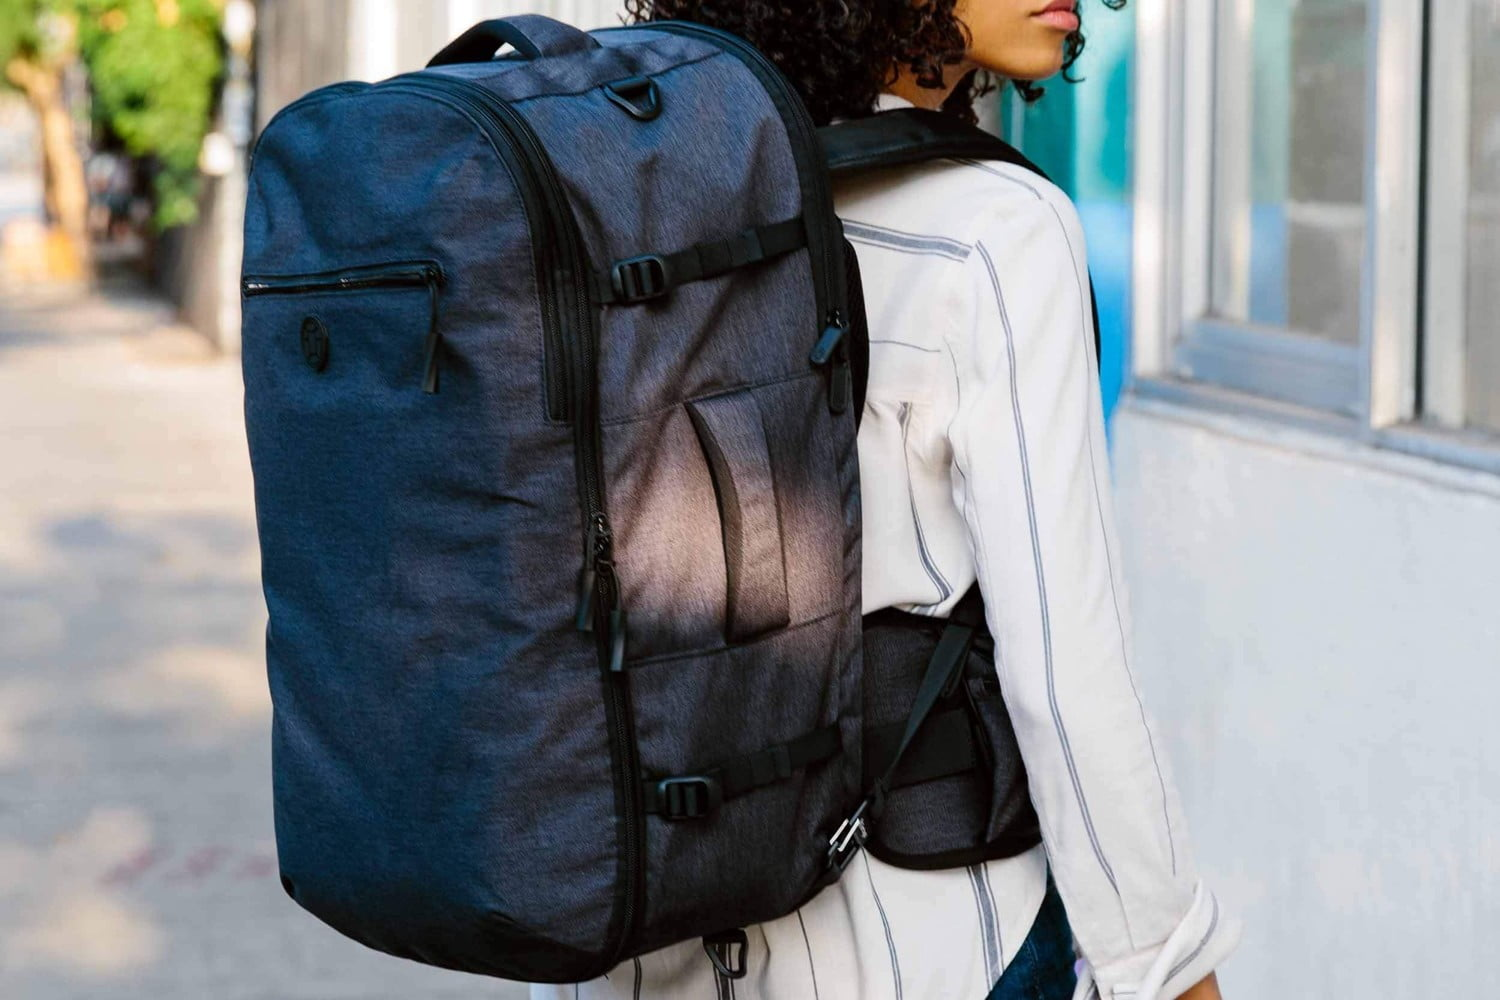 The Tortuga Setout backpack worn by a woman.